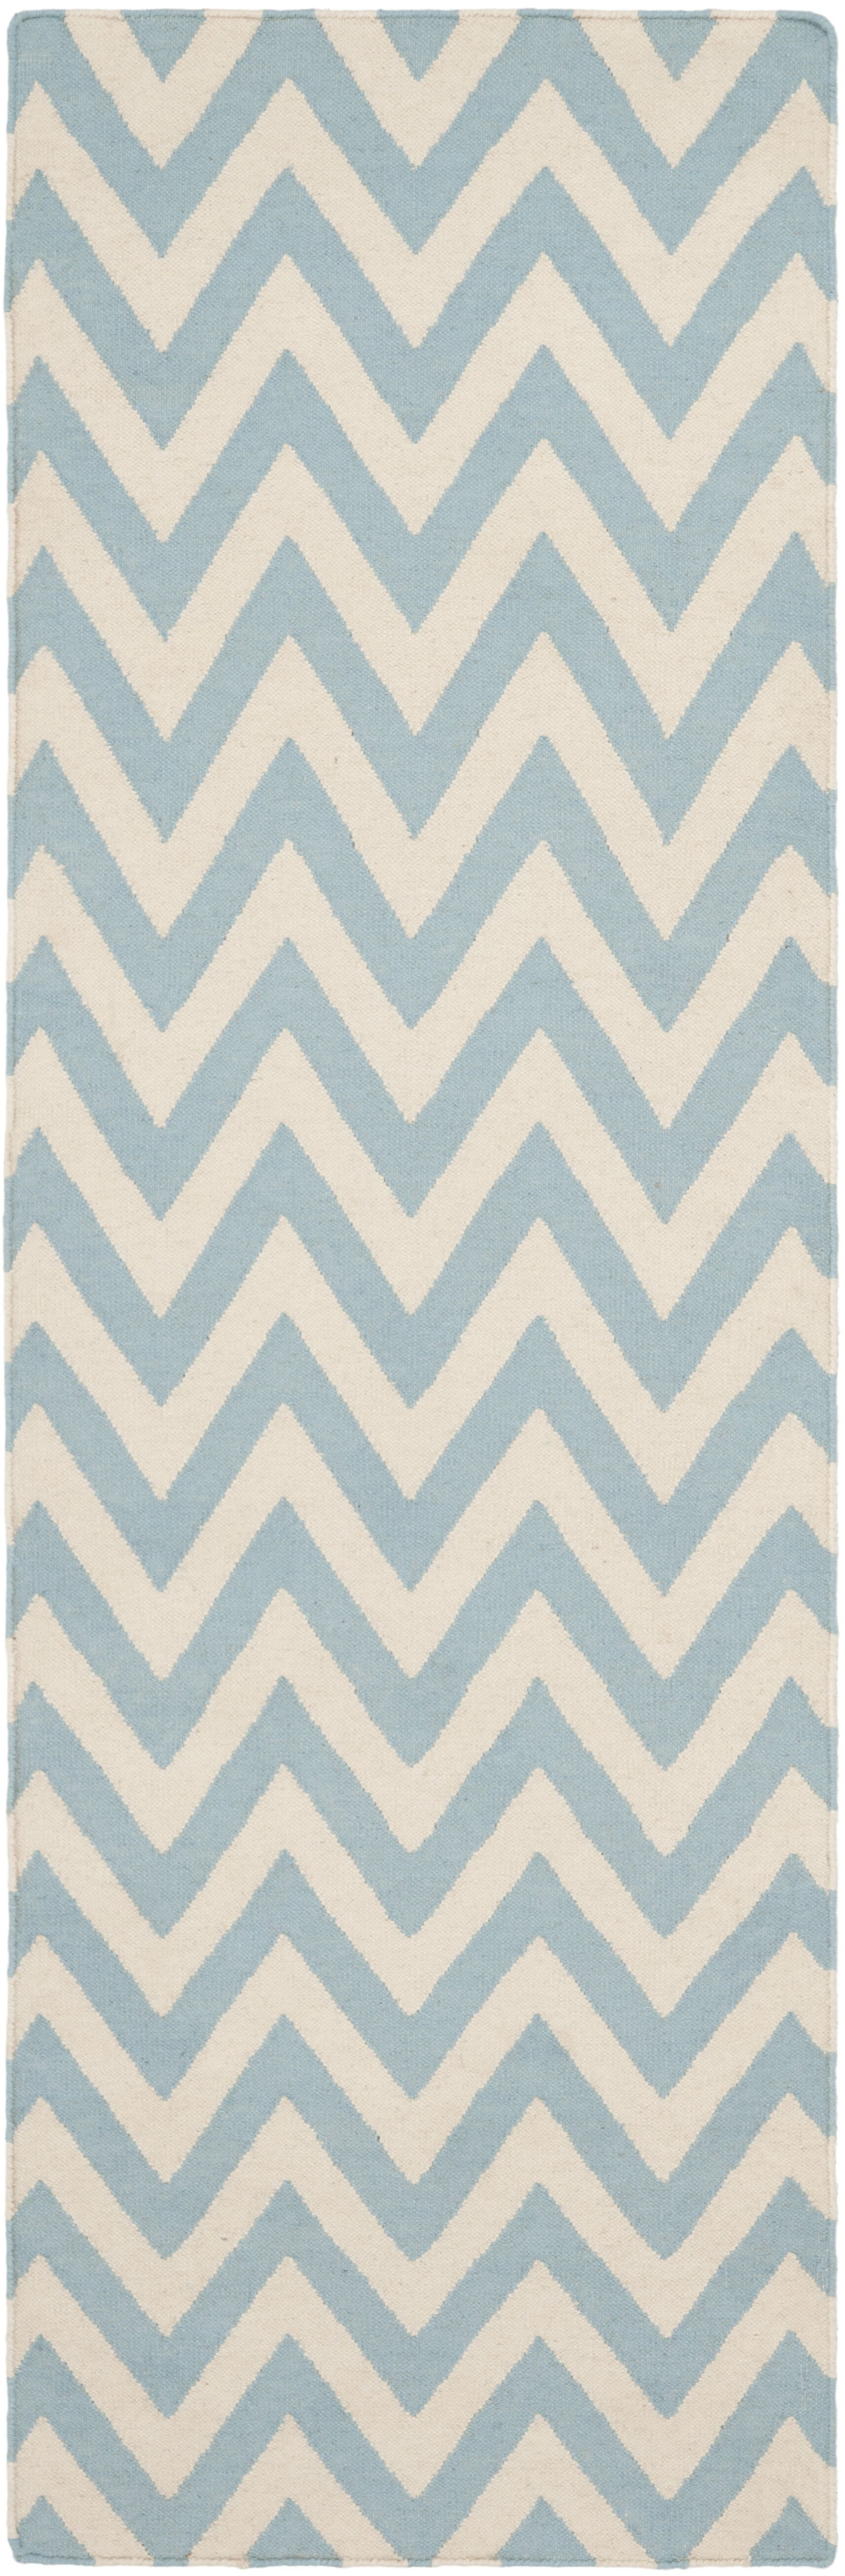 Dhurries Hand-Woven Wool Blue/Ivory Area Rug Rug Size: Runner 2'6